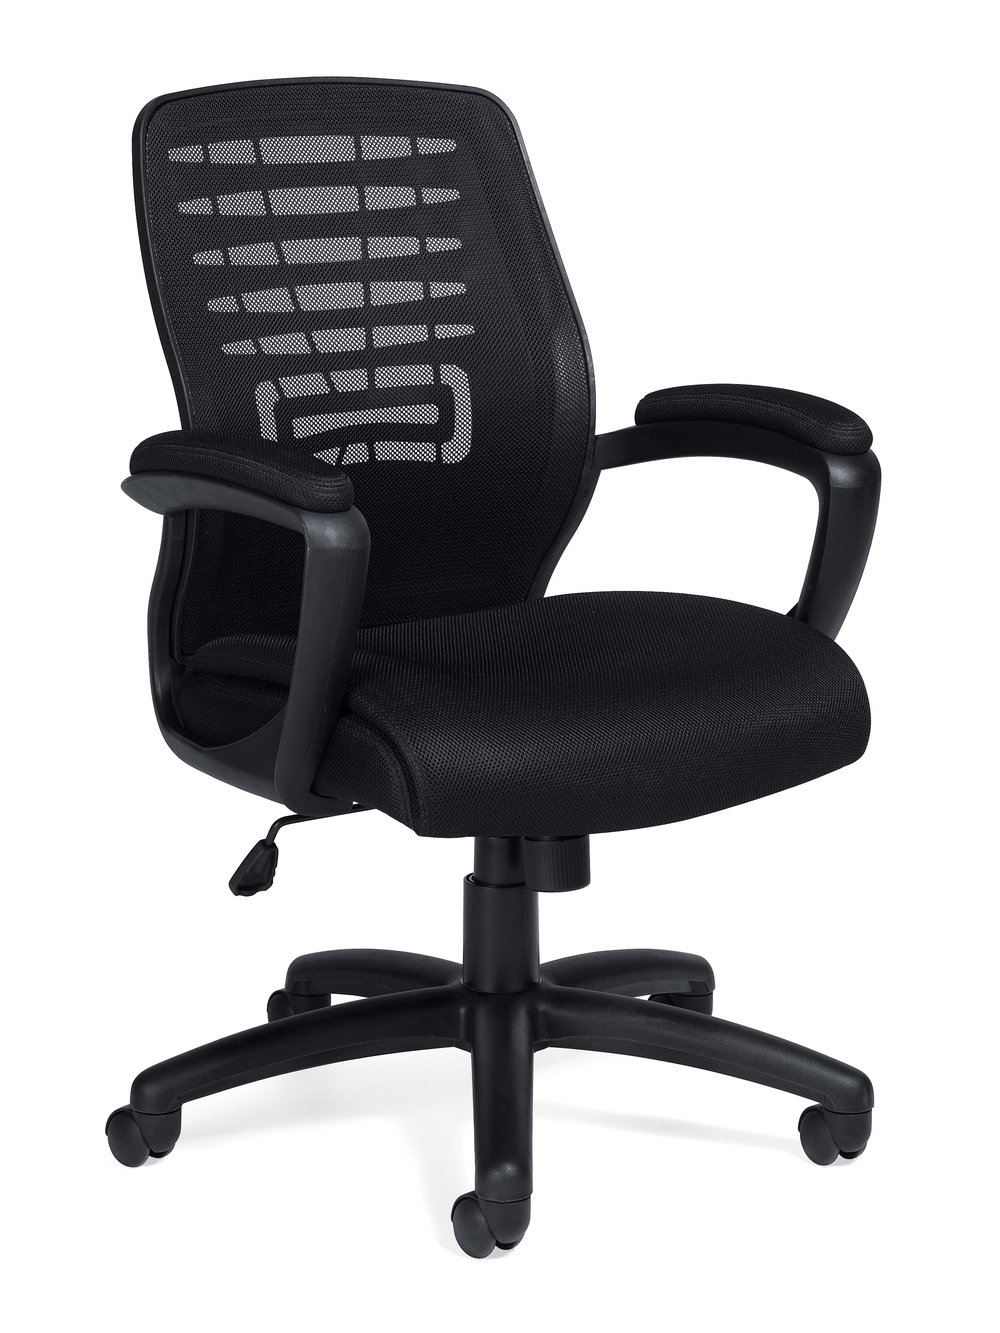 OTG11750B Mash Back Managers Chair